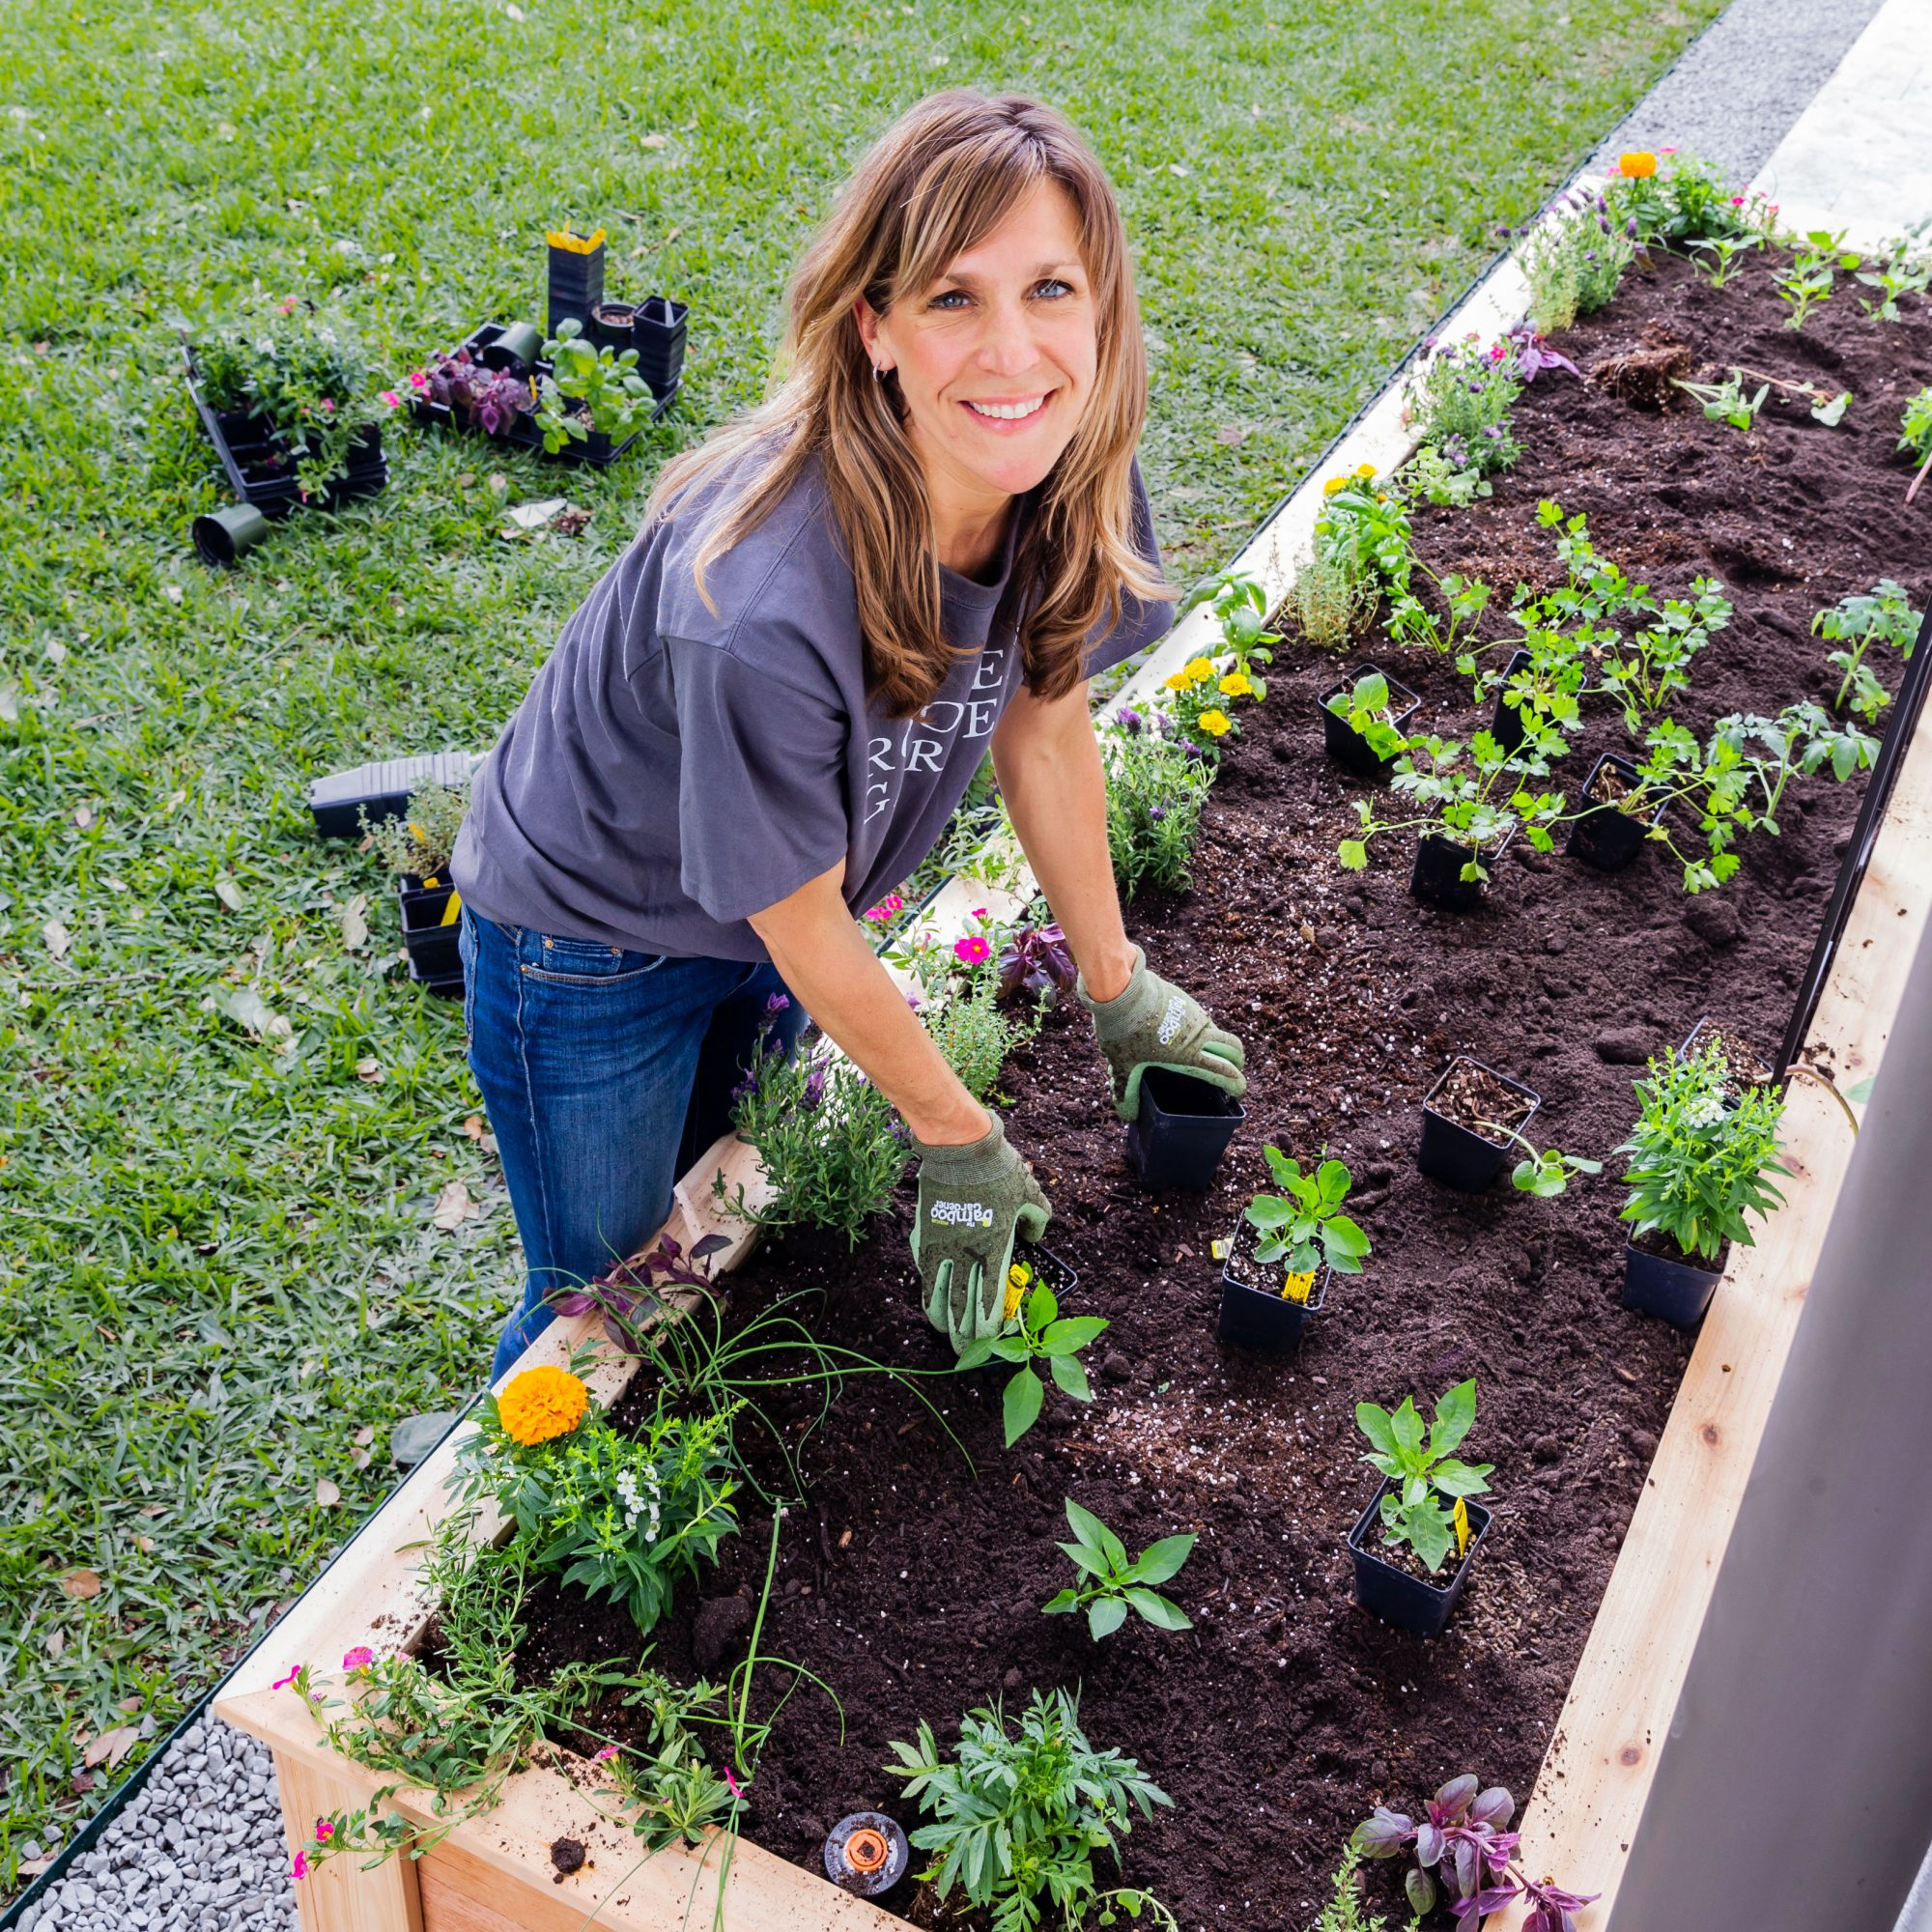 Nicole Burke Planting Kitchen Garden in Raised Bed